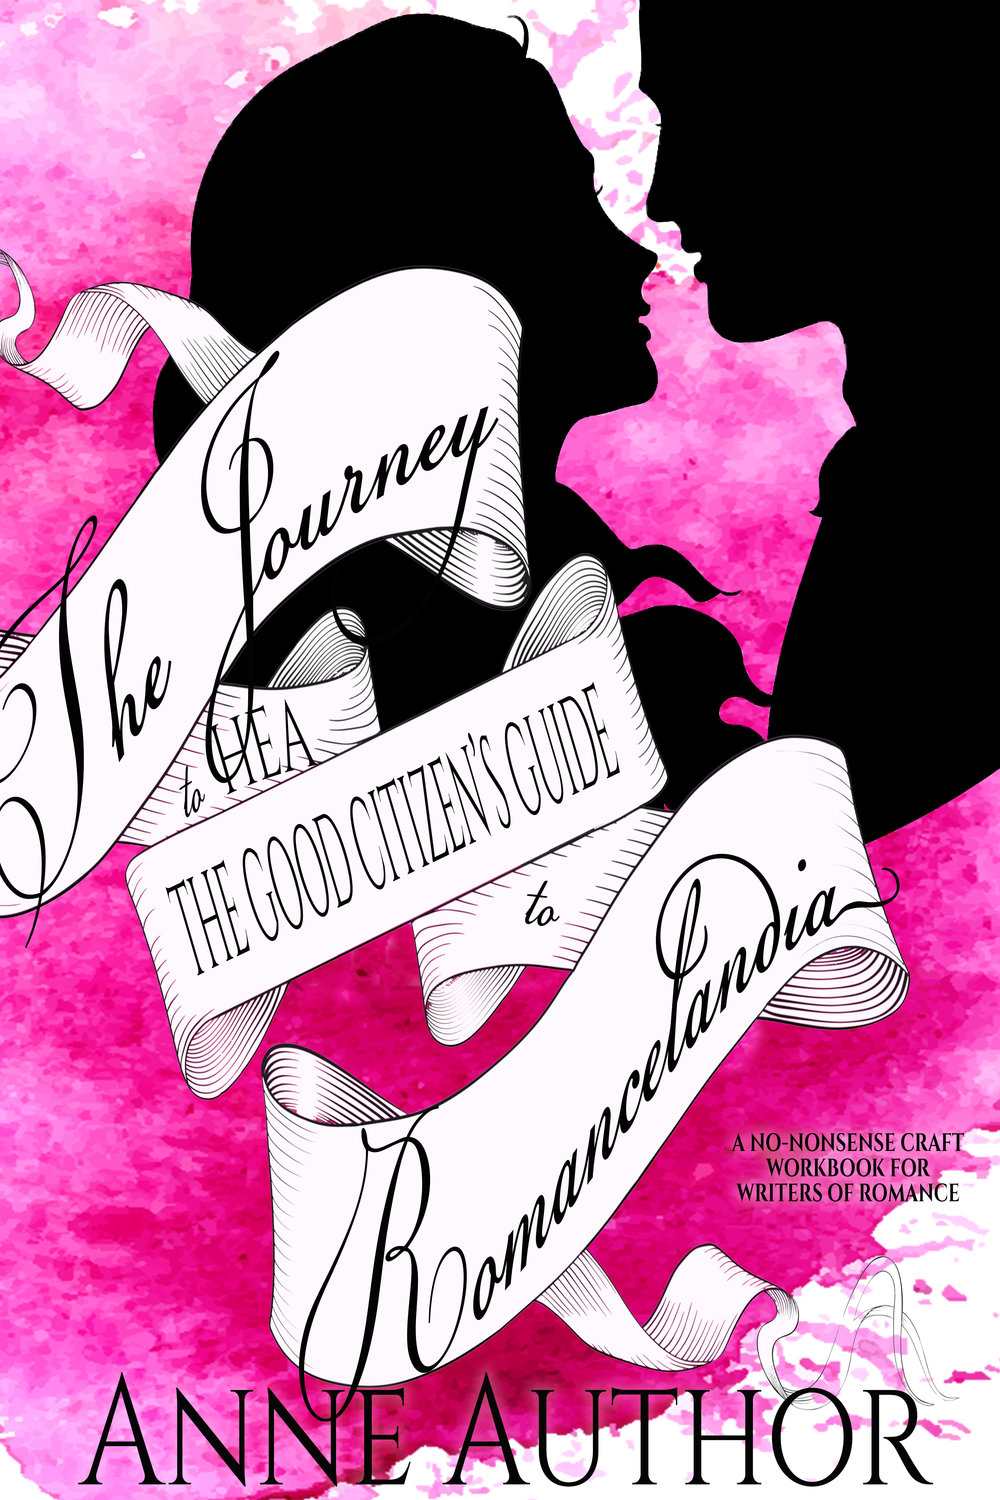 The-Journey-to-HEA-Anne-Author-Cover.jpg